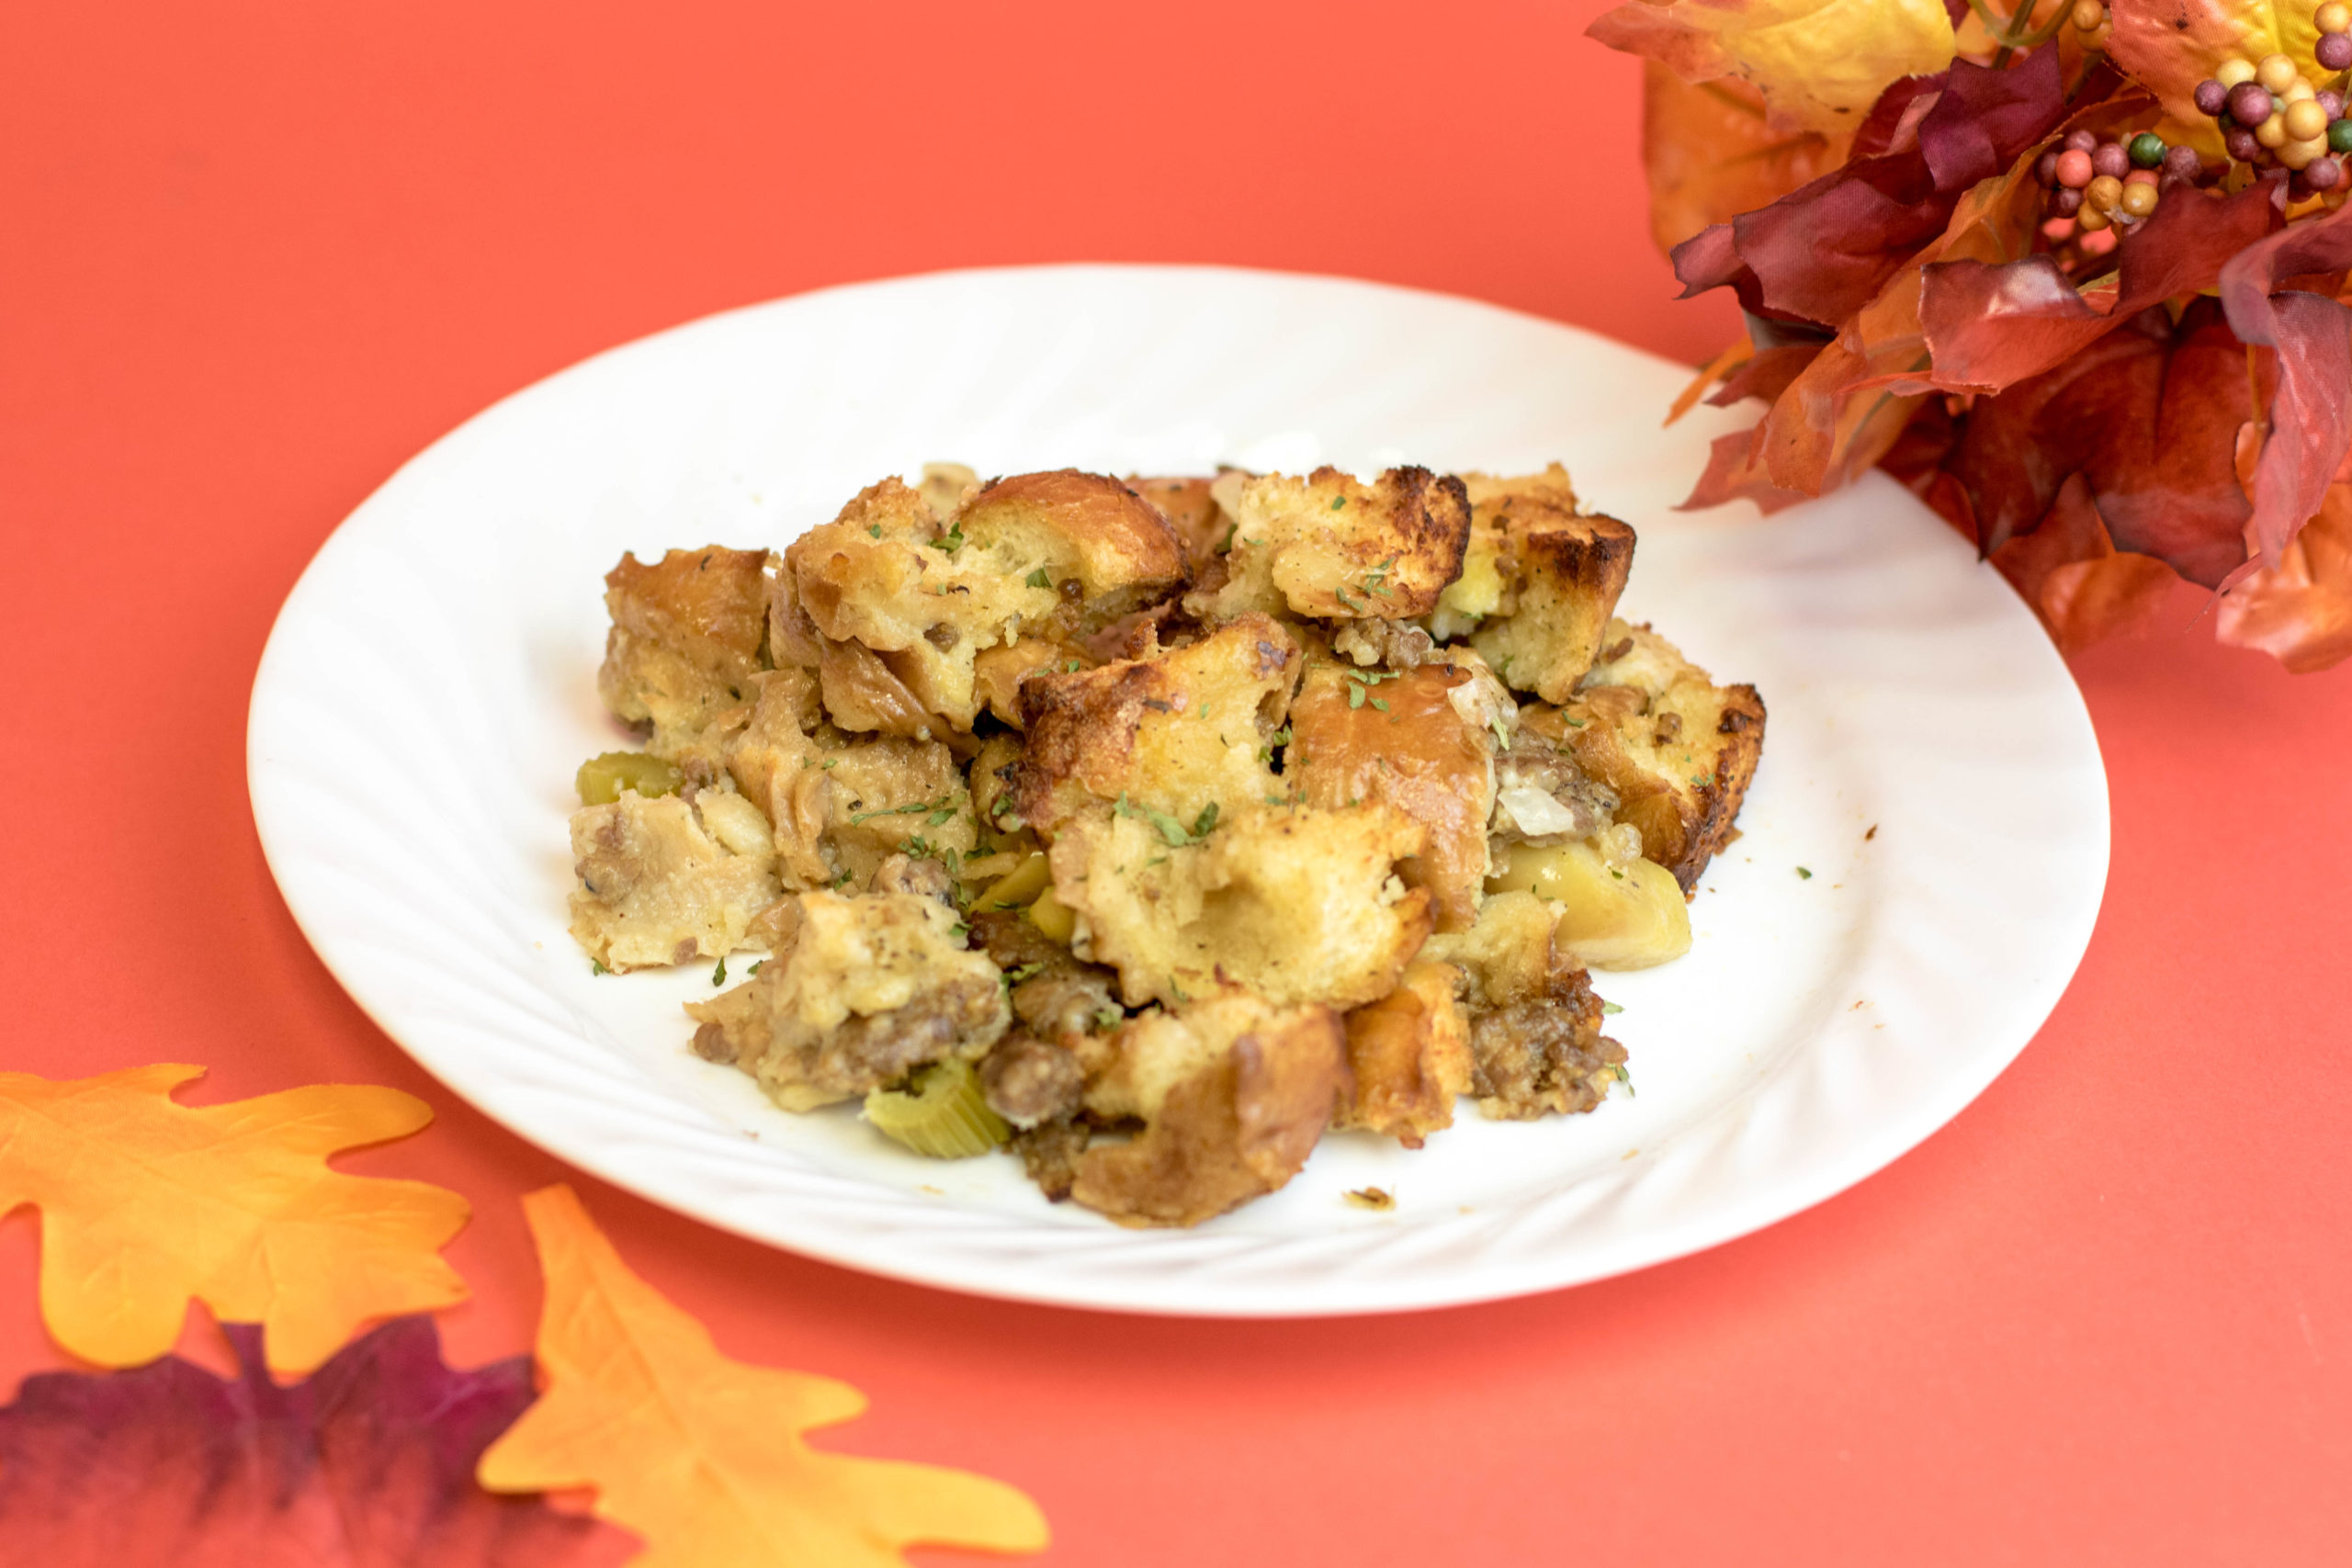 Thanksgiving stuffing on a white plate surrounded by fall leaves sitting on a red background.